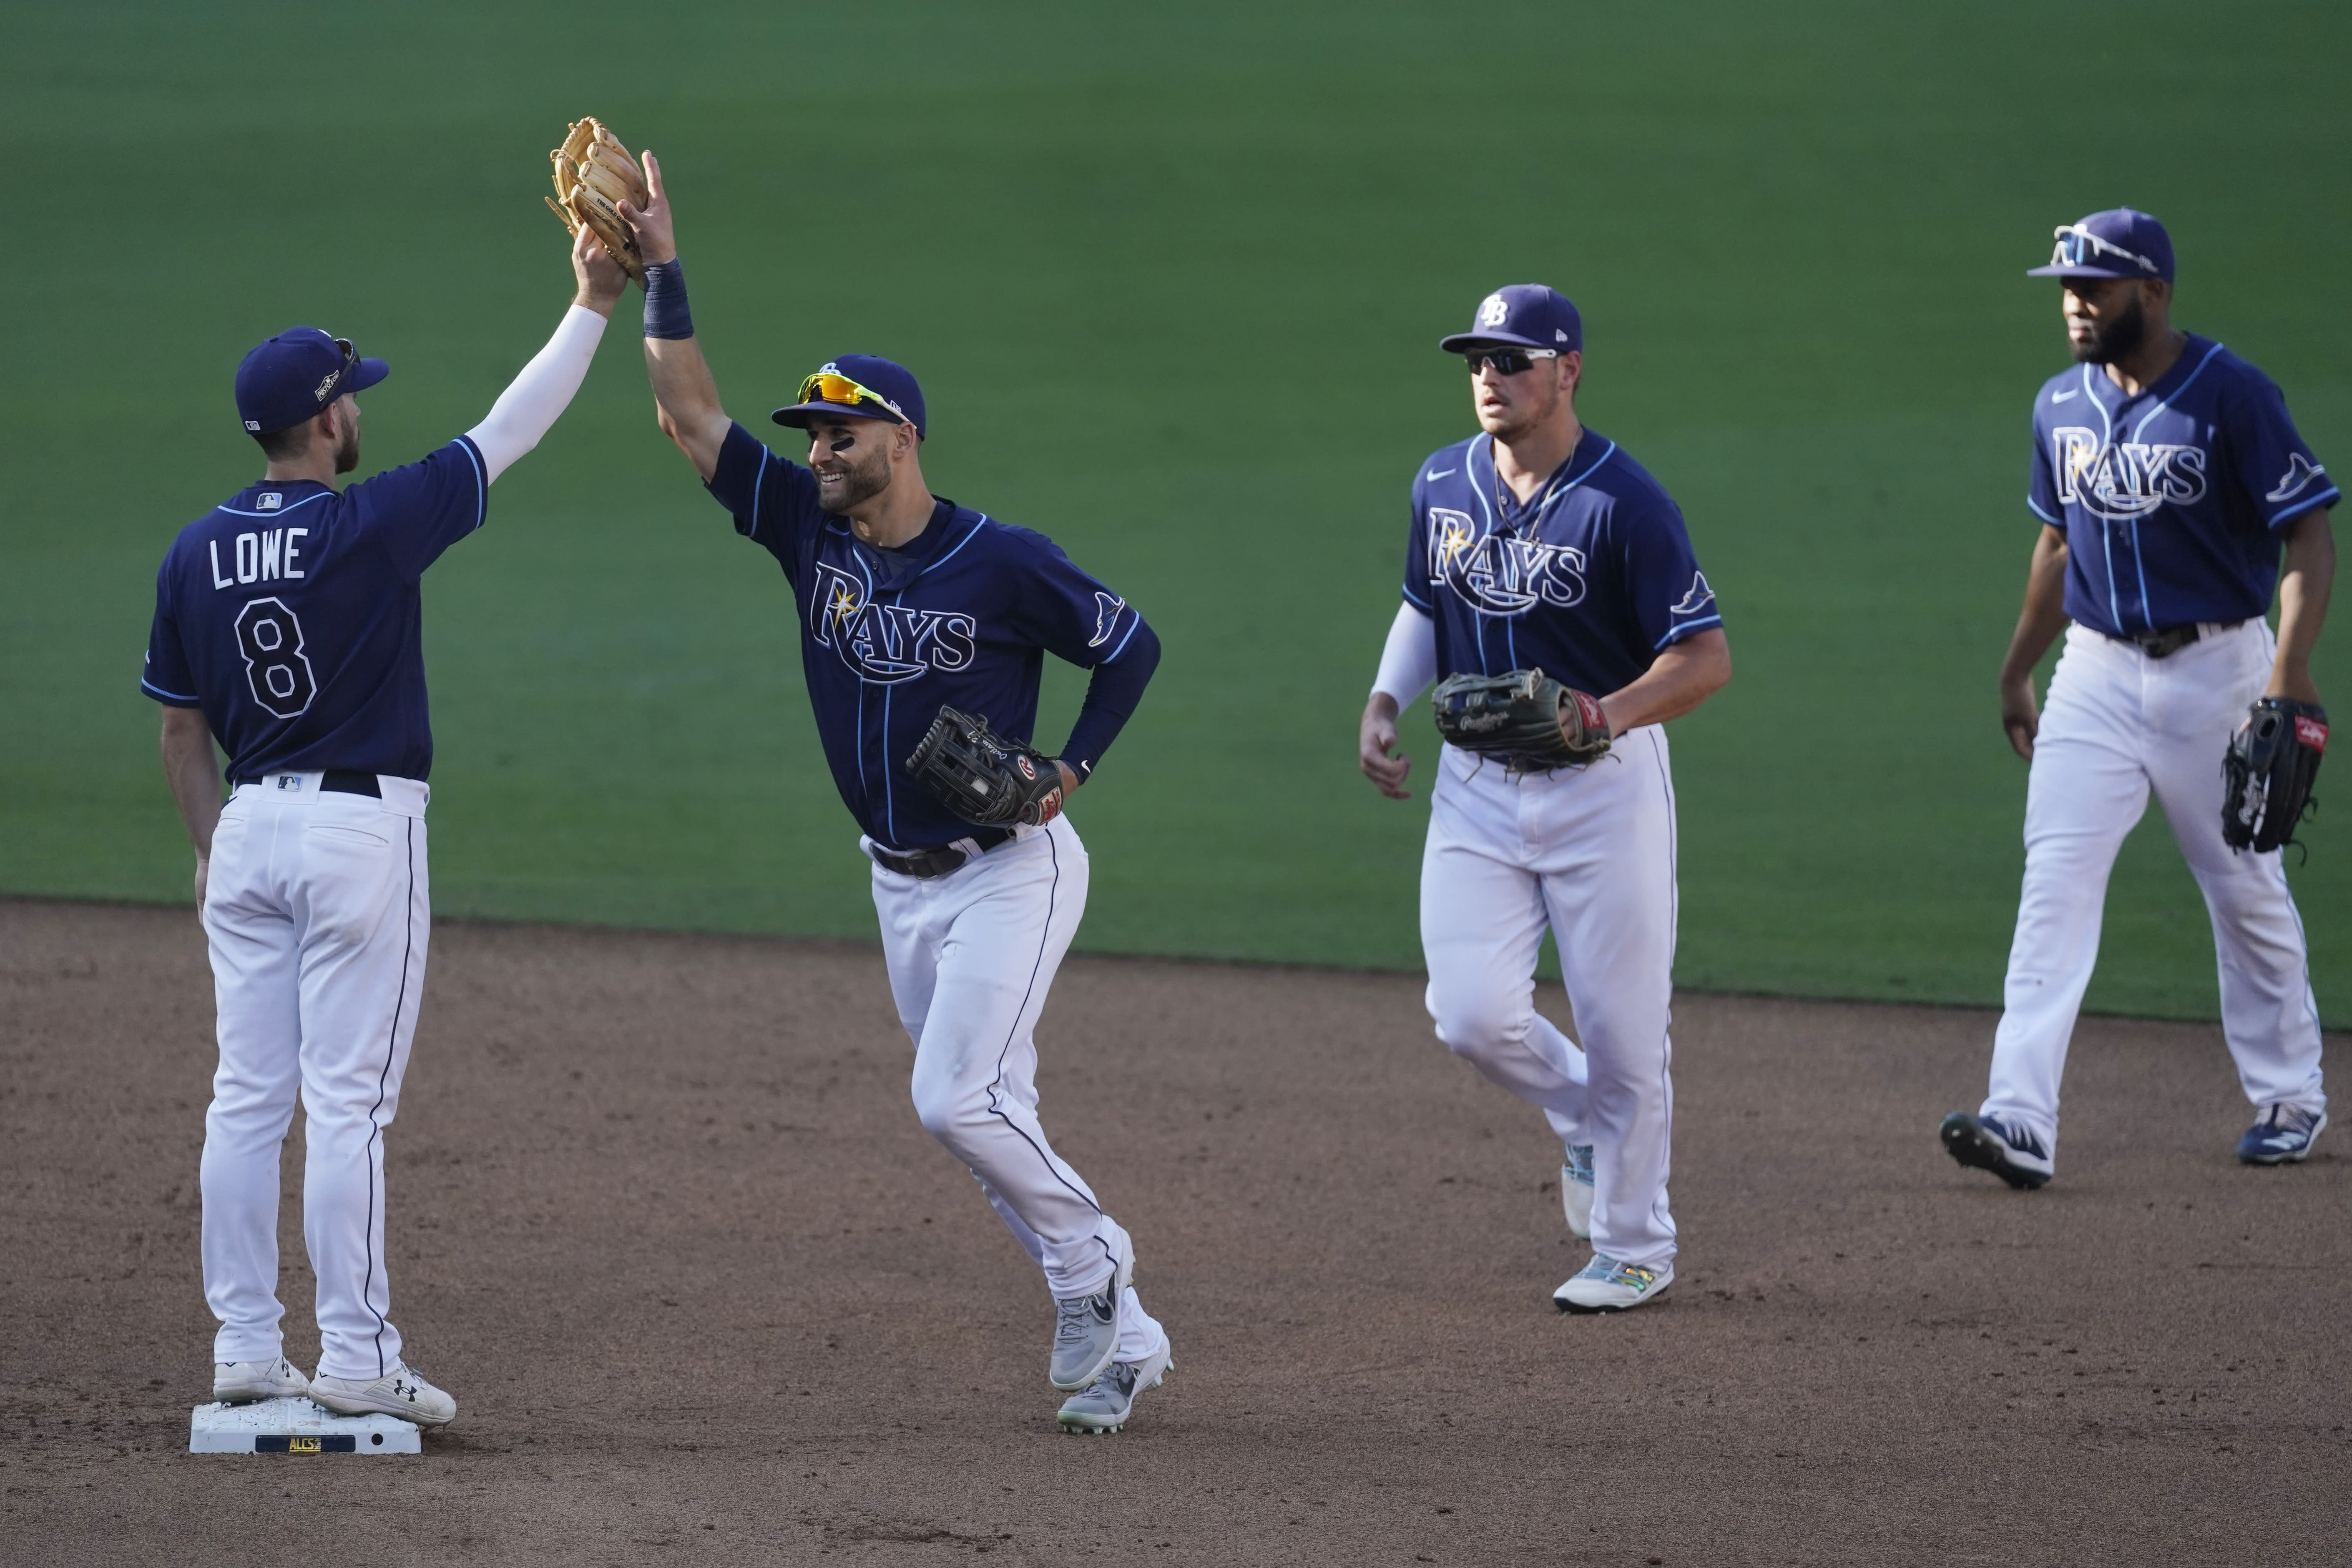 Tampa Bay Rays celebrate their Game 2 victory over the Houston Astros in a baseball American League Championship Series, Monday, Oct. 12, 2020, in San Diego. The Rays defeated the Astros 4-2 to lead the series 2-0 games. (AP Photo/Ashley Landis)